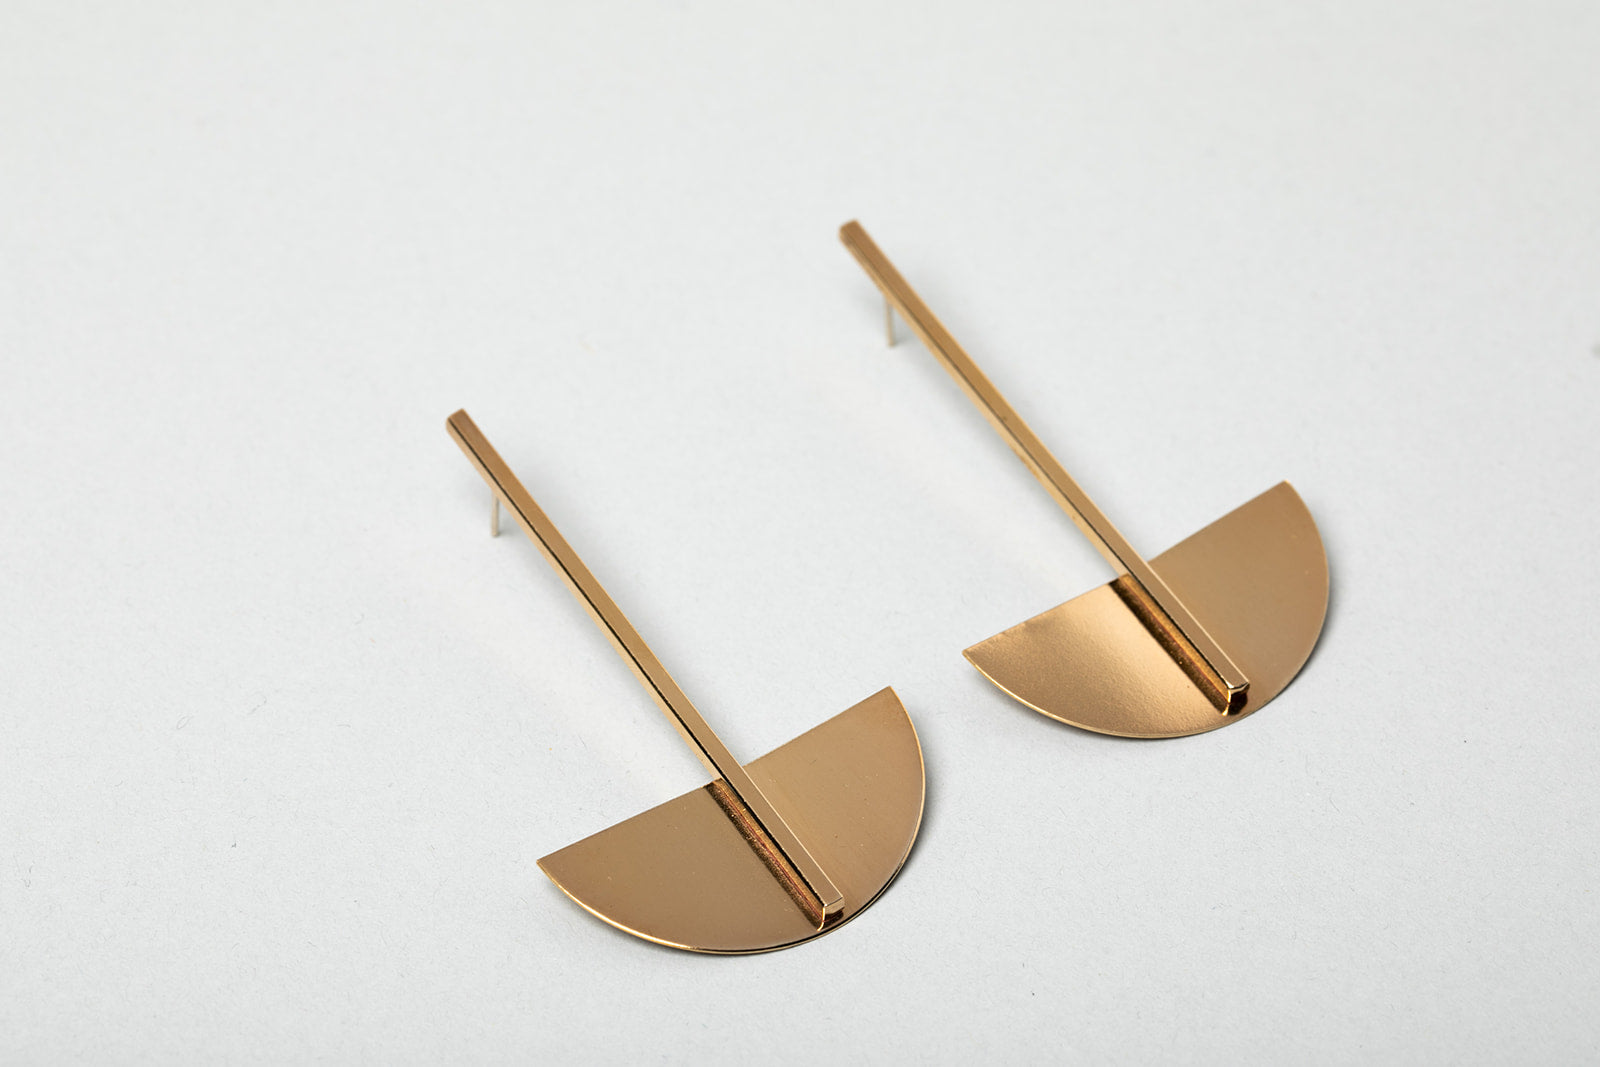 Paddle Earring